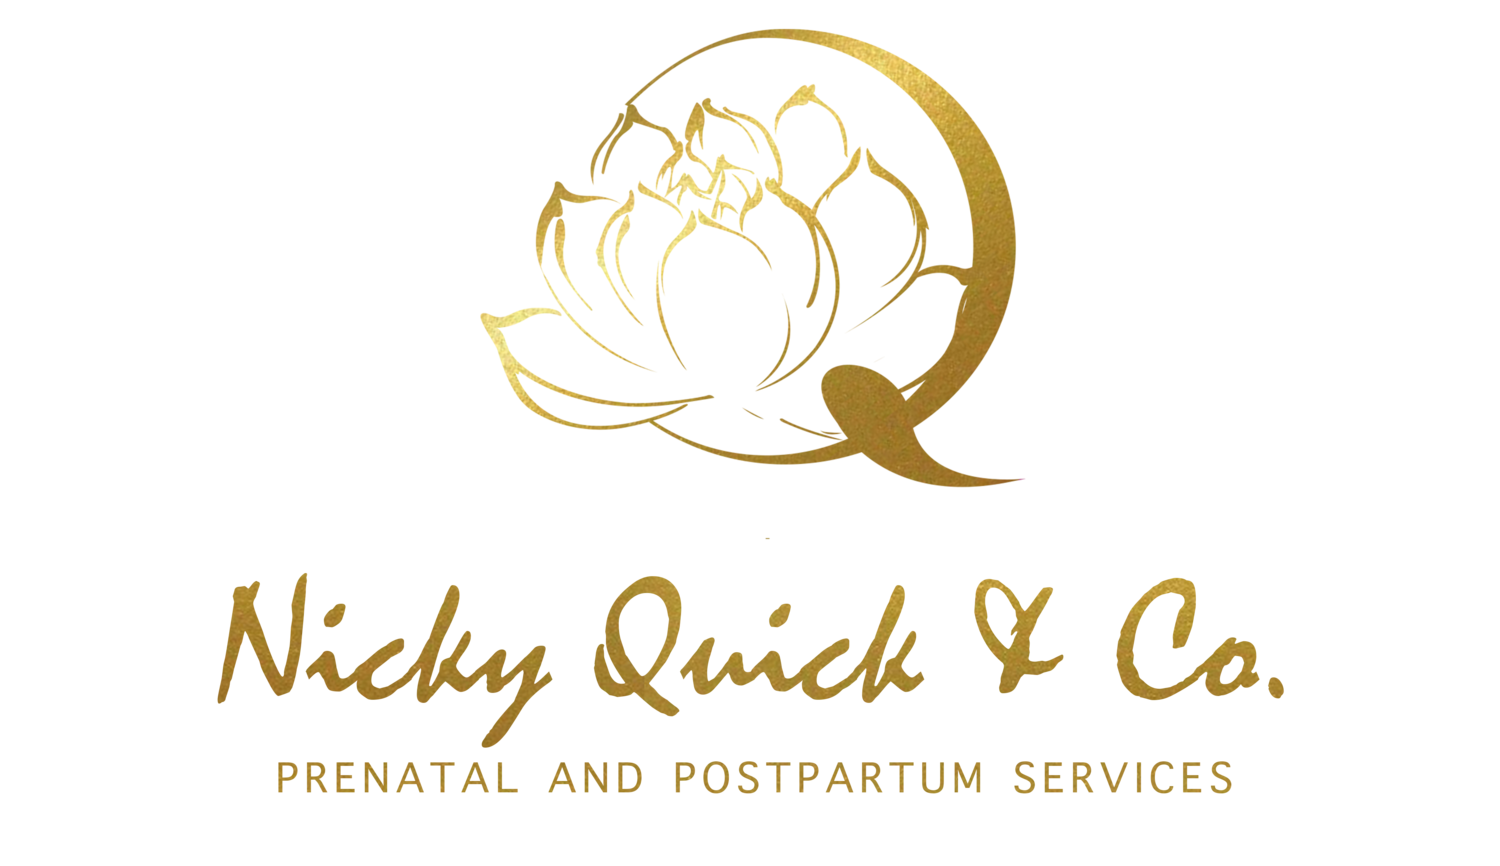 Nicky Quick & Co